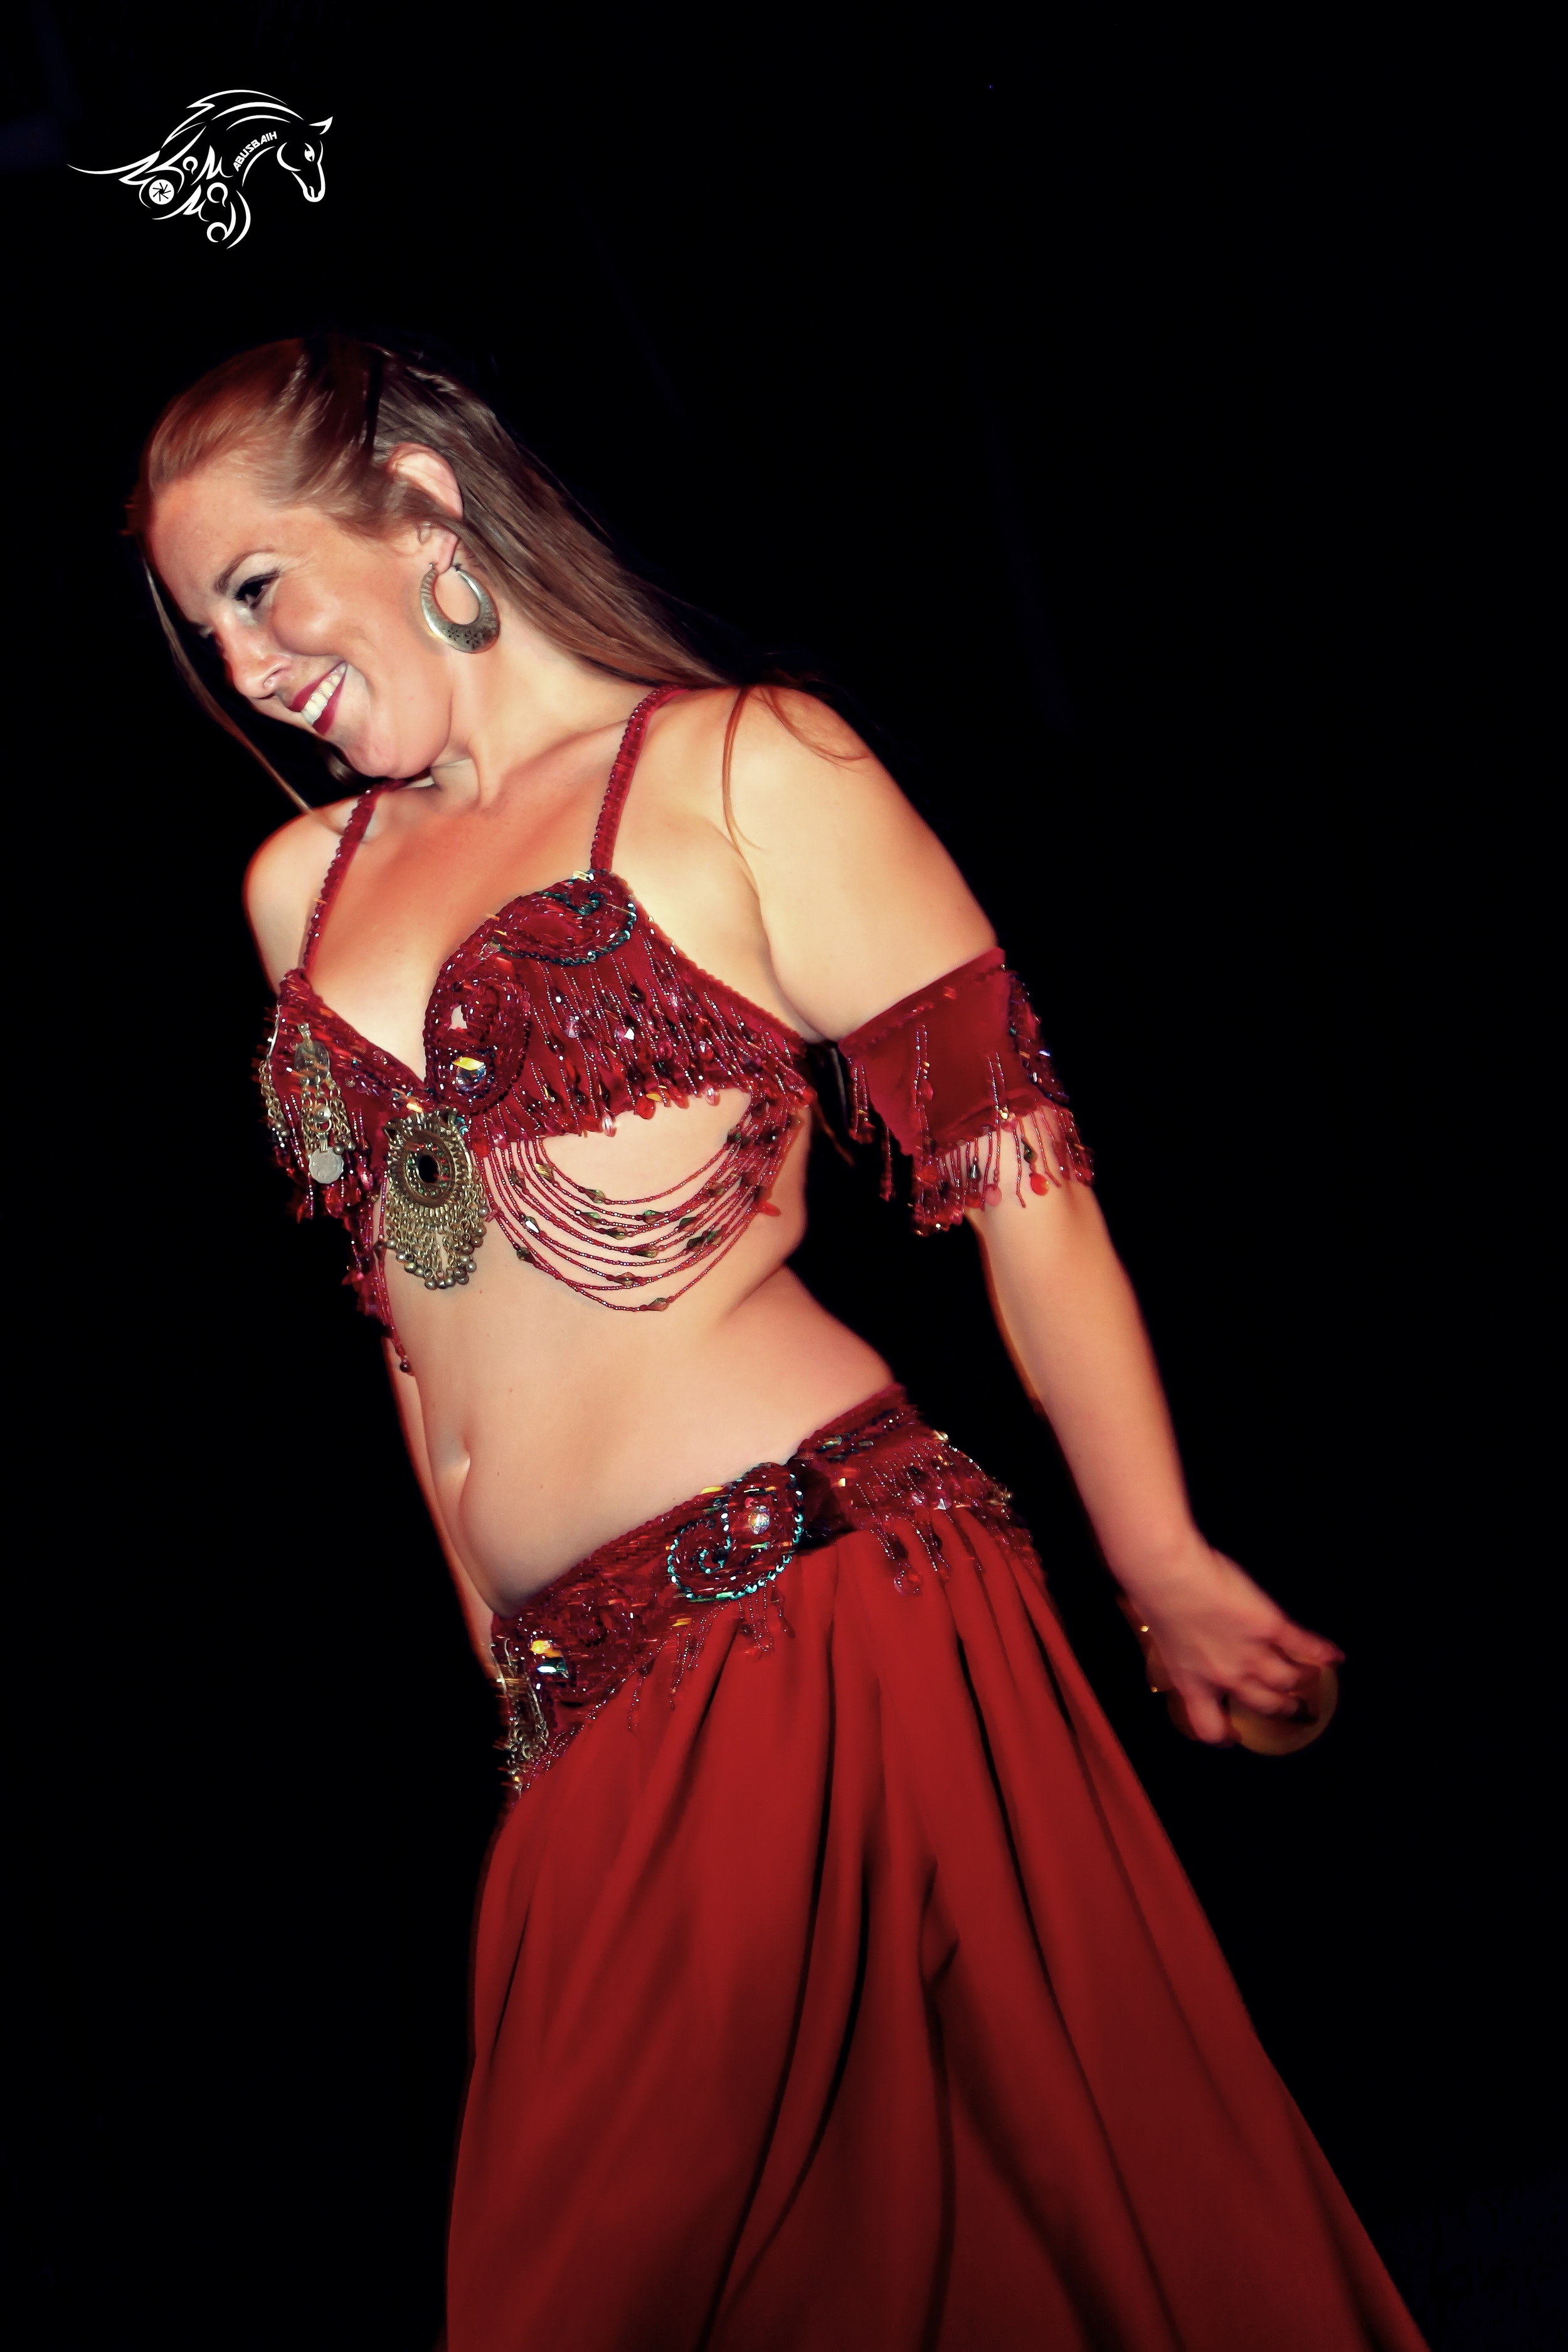 Maria Oriental - Belly Dance with Zills at Stockholm Belly Dance Festival. Photo: Mohammad Abusbaih.   https://www.facebook.com/mohd.abusbaih